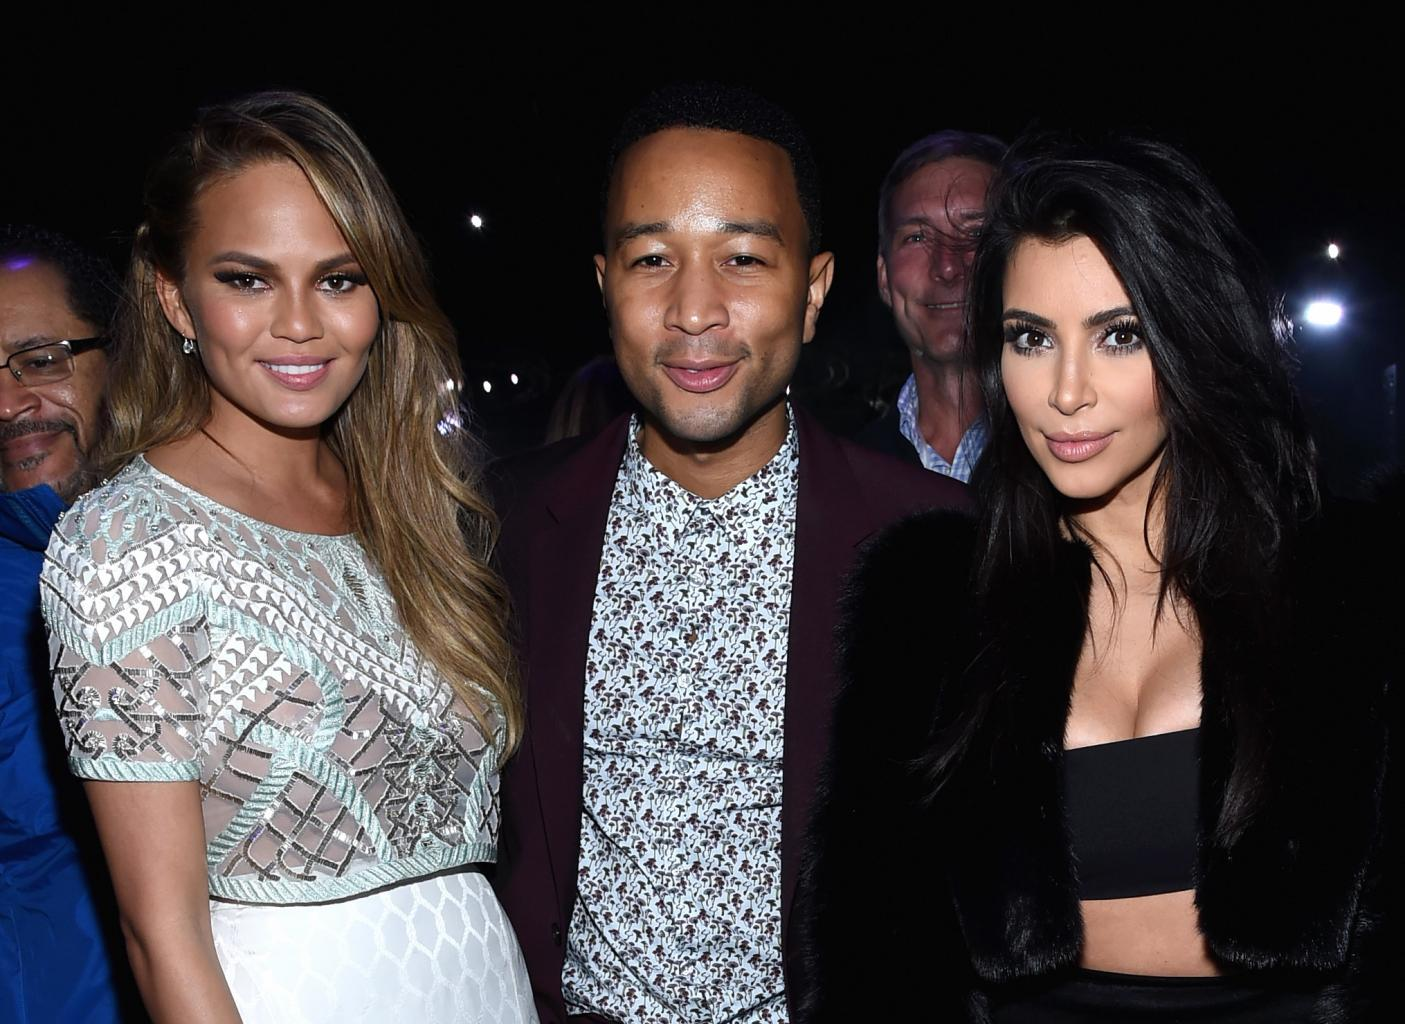 Chrissy Teigen and John Legend Share How Friend Kim Kardashian West's 'Horrific' Robbery Changed Their Lives